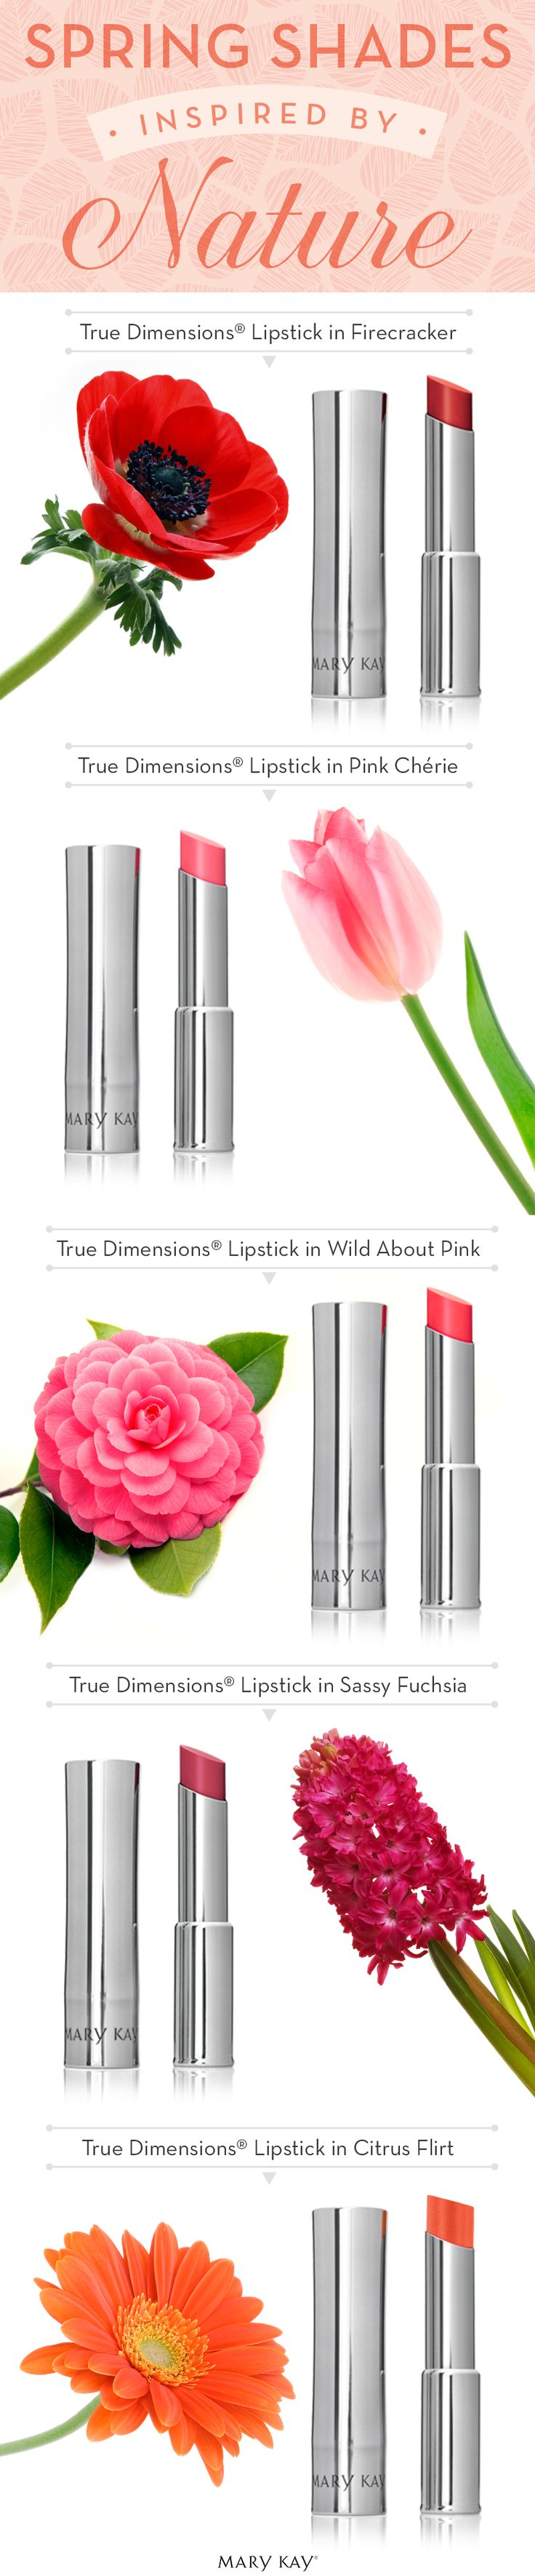 Our current makeup look is inspired by the beautiful and vivid colors outside! Choose your favorite springtime flower, then find a matching lip shade from over 45 Mary Kay® Lipsticks.